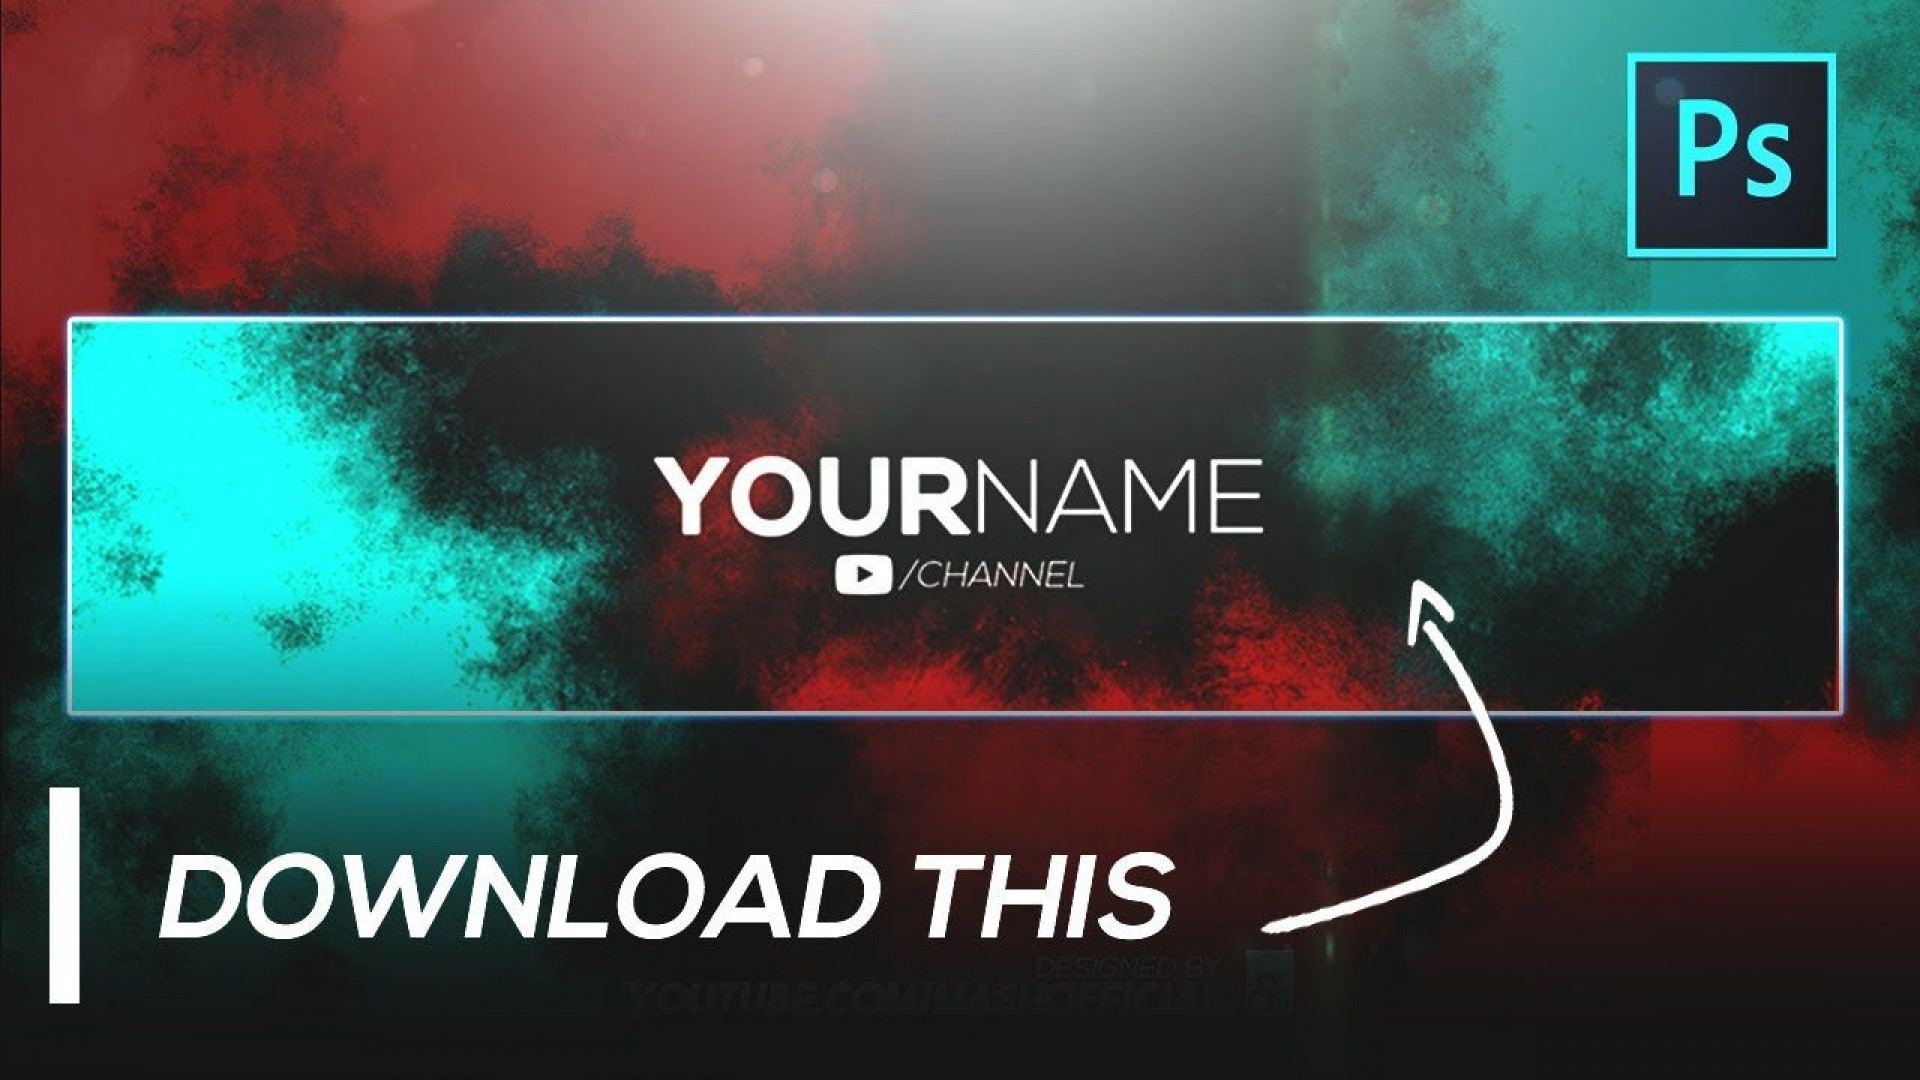 002 Awful Youtube Channel Art Template Photoshop Download Photo 1920